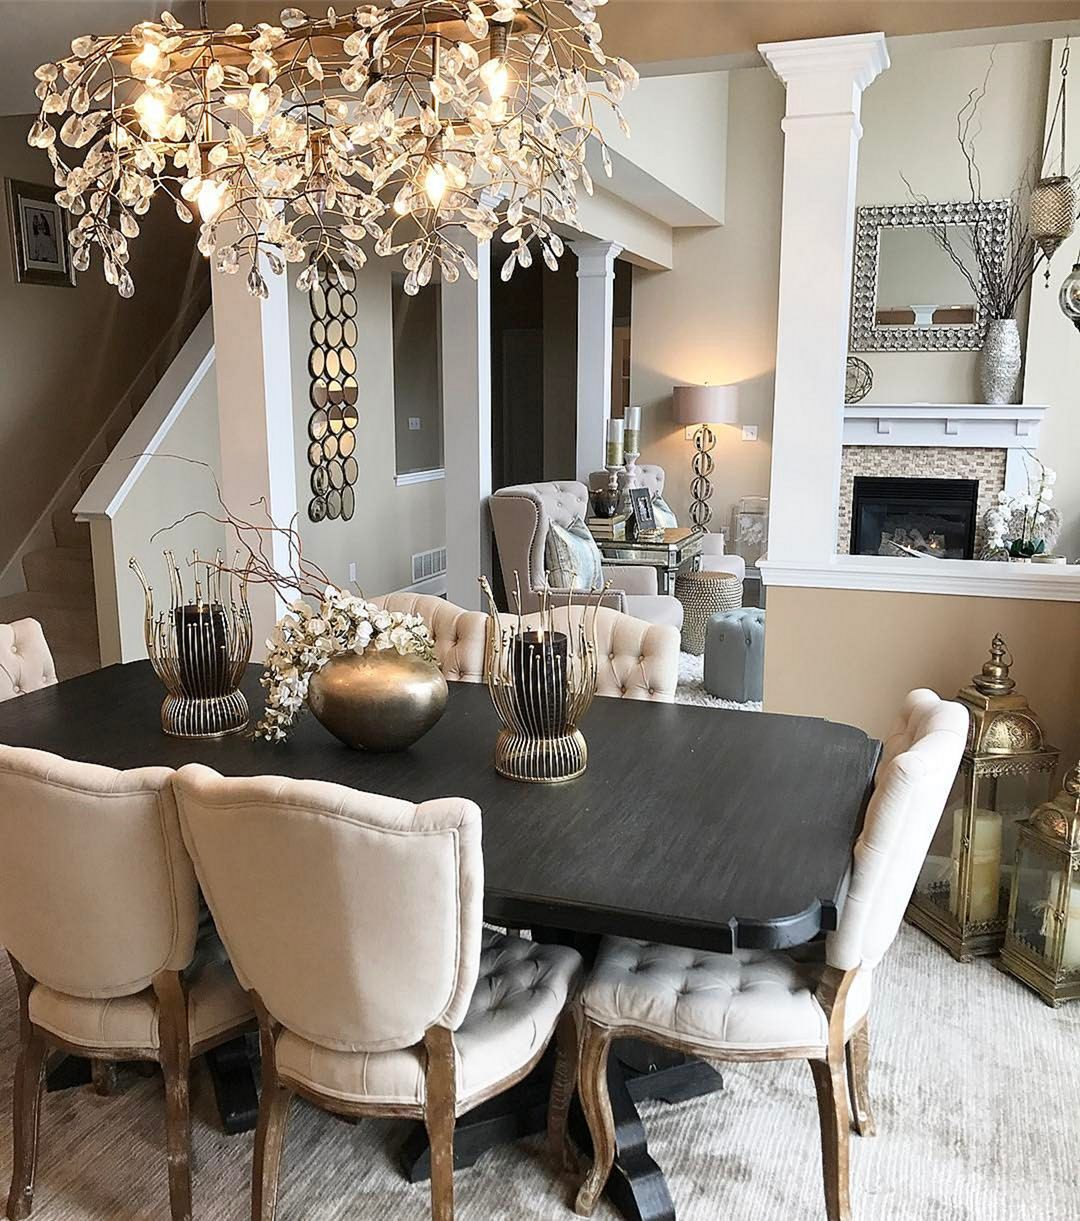 40+ Awesome Dining Set Design Ideas For Dinner More